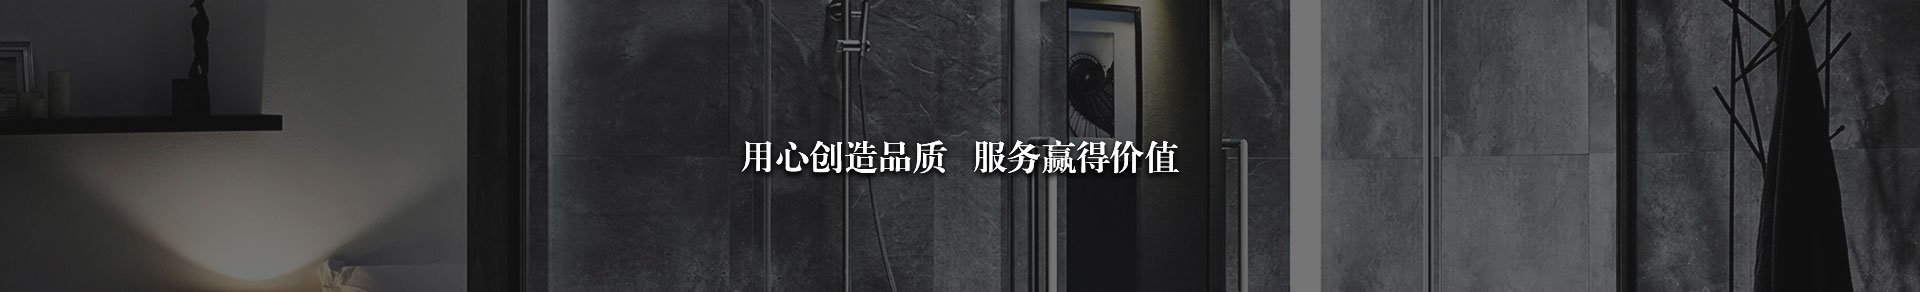 http://www.carbonflex.cn/data/upload/201908/20190816123450_929.jpg